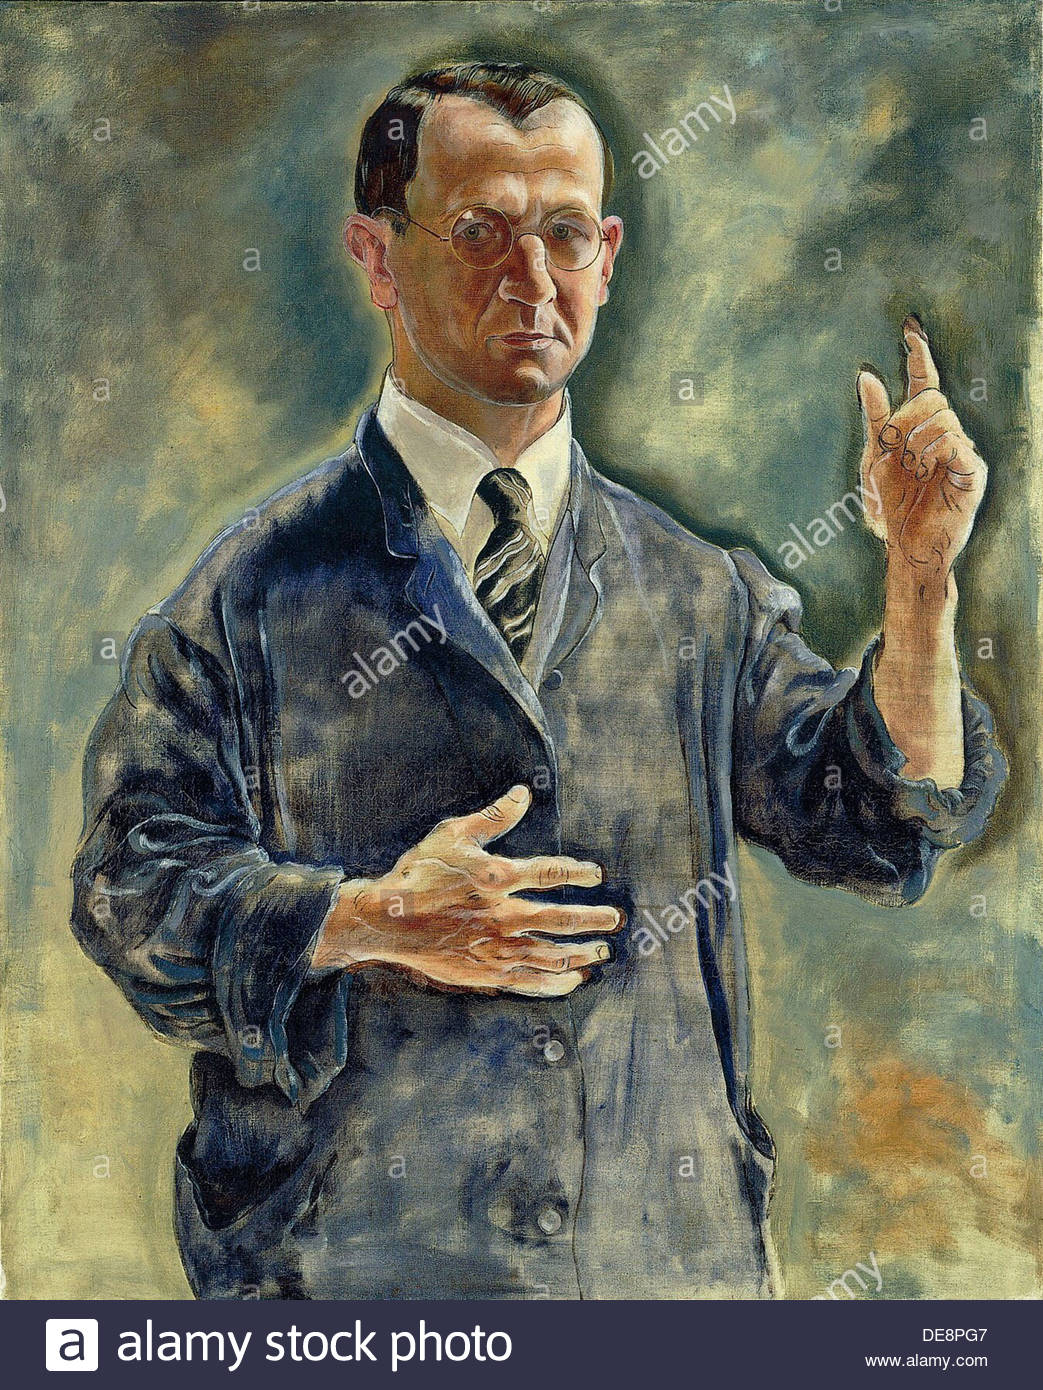 Self Portrait as Warner, 1927. Artist: Grosz, George (1893-1959) - Stock Image